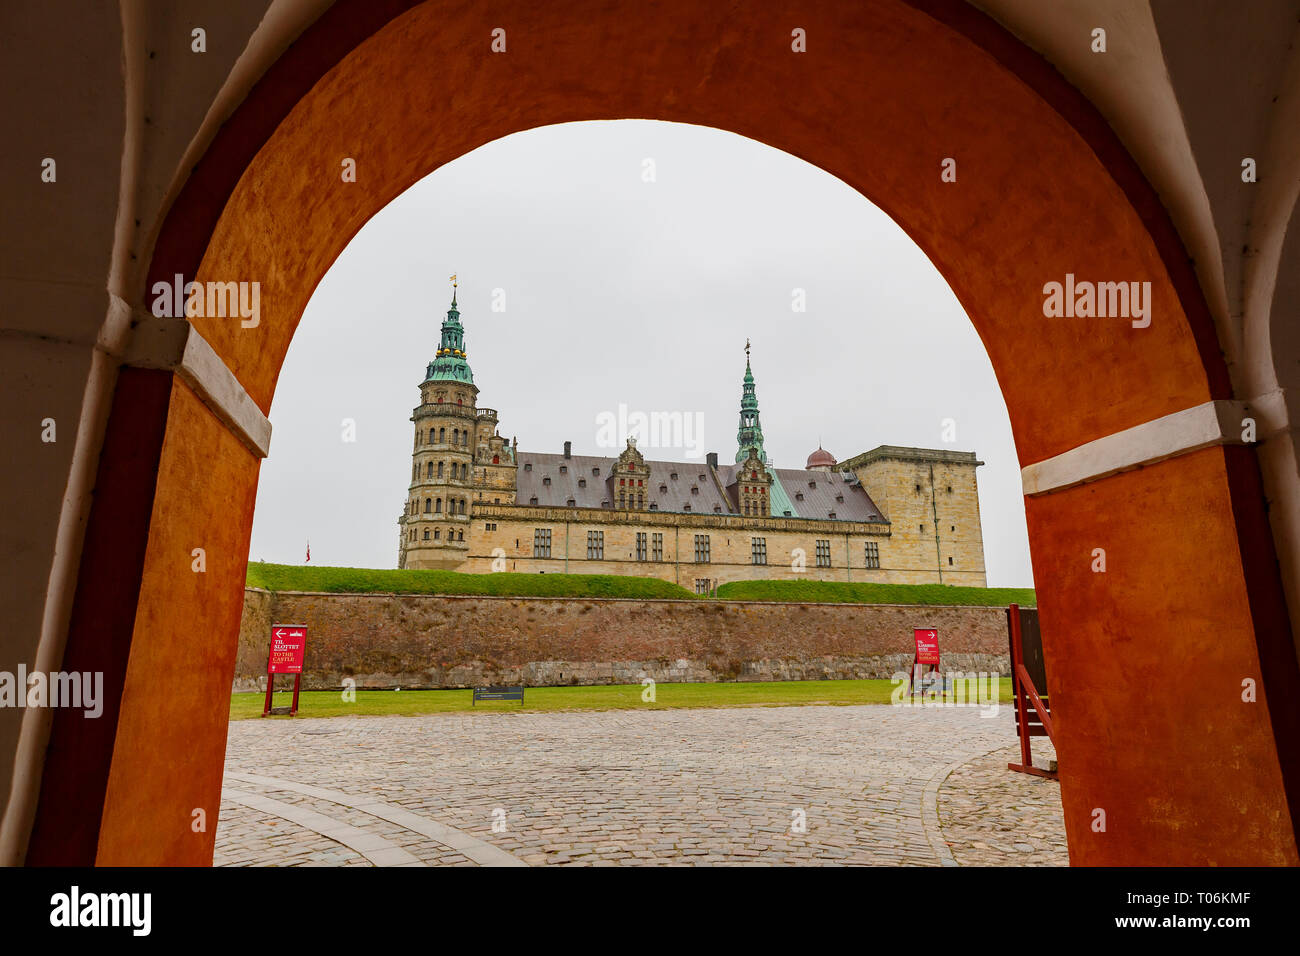 Exterior view of the famous Kronborg Castle at Denmark - Stock Image